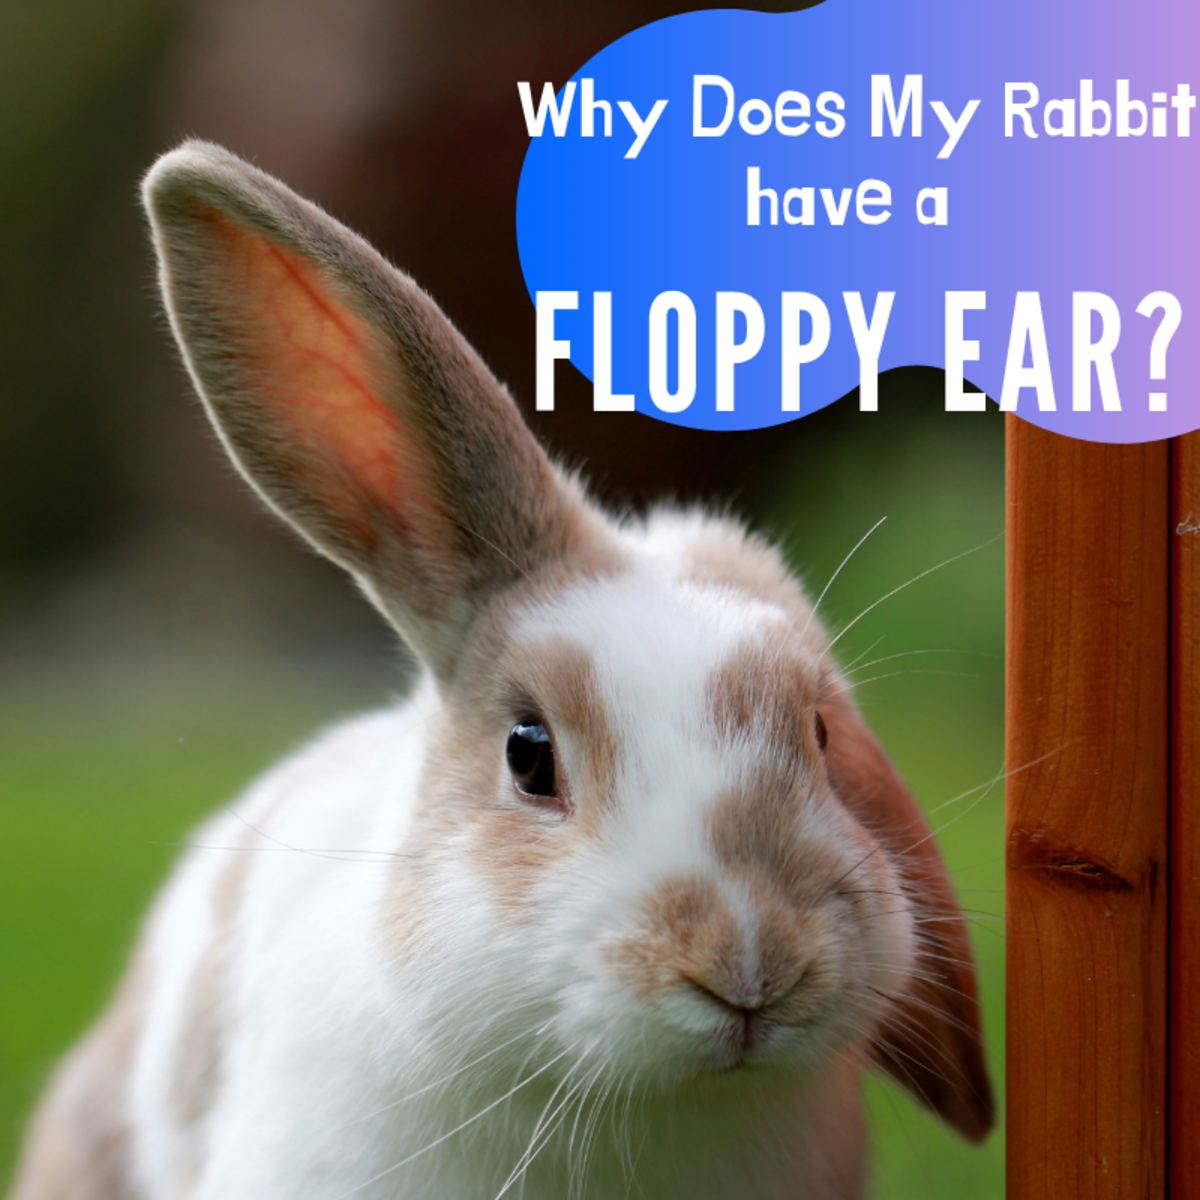 What Makes Rabbit Ears Go Floppy?